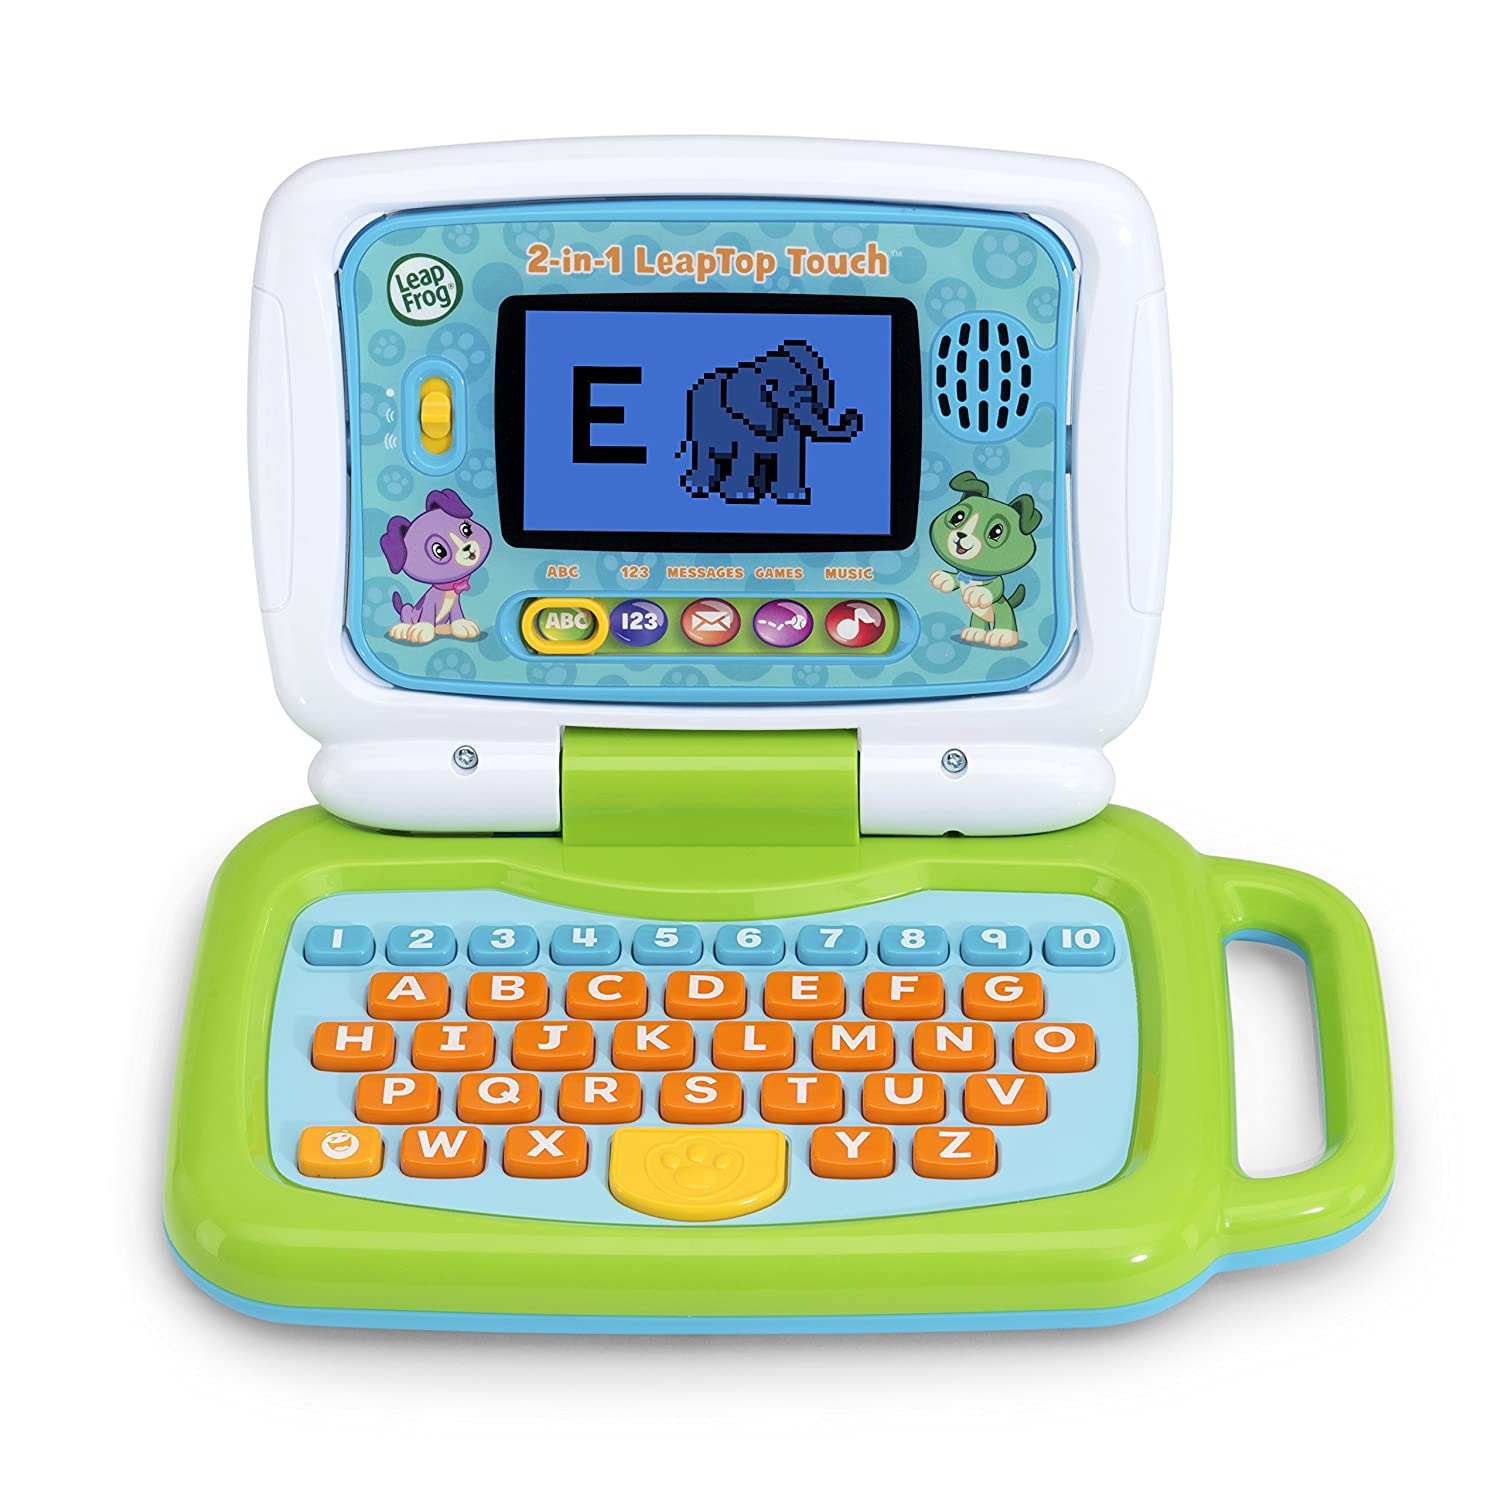 d0b2f9de441 Amazon.com  LeapFrog 2-in-1 LeapTop Touch  Toys   Games